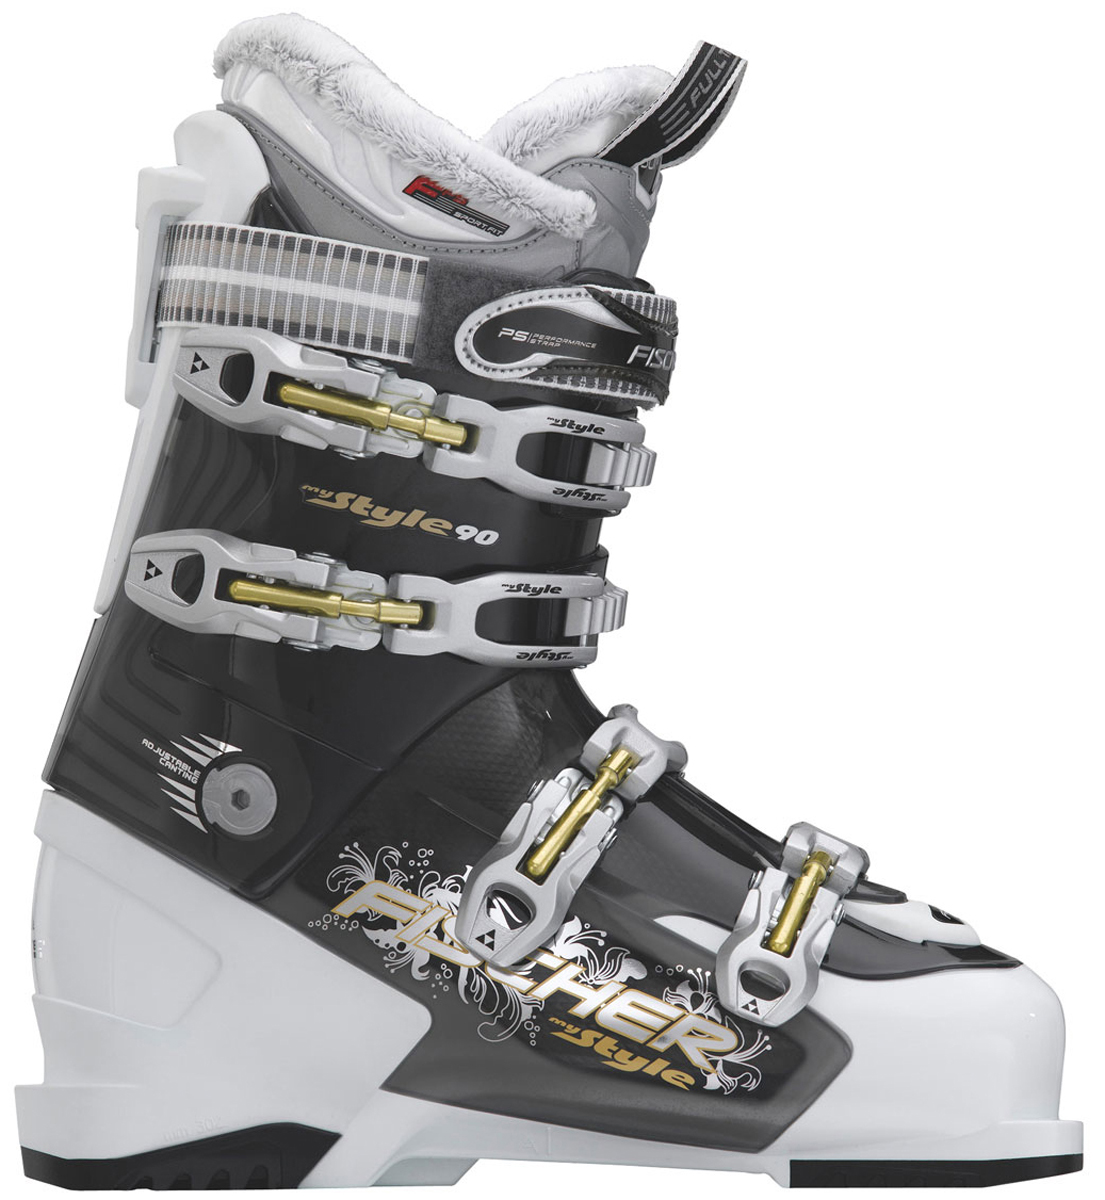 Ski Sporty ladies' boot. This comfort boot not only looks good, it also has impressive features inside, too.Key Features of the Fischer My Style 90 Ski Boots: FFS Sport Fit Liner with Rapid Slide System Fur Lining Single Canting Lady Spoiler Heat System Ready Soma-Tec Flex: 90 - $306.95